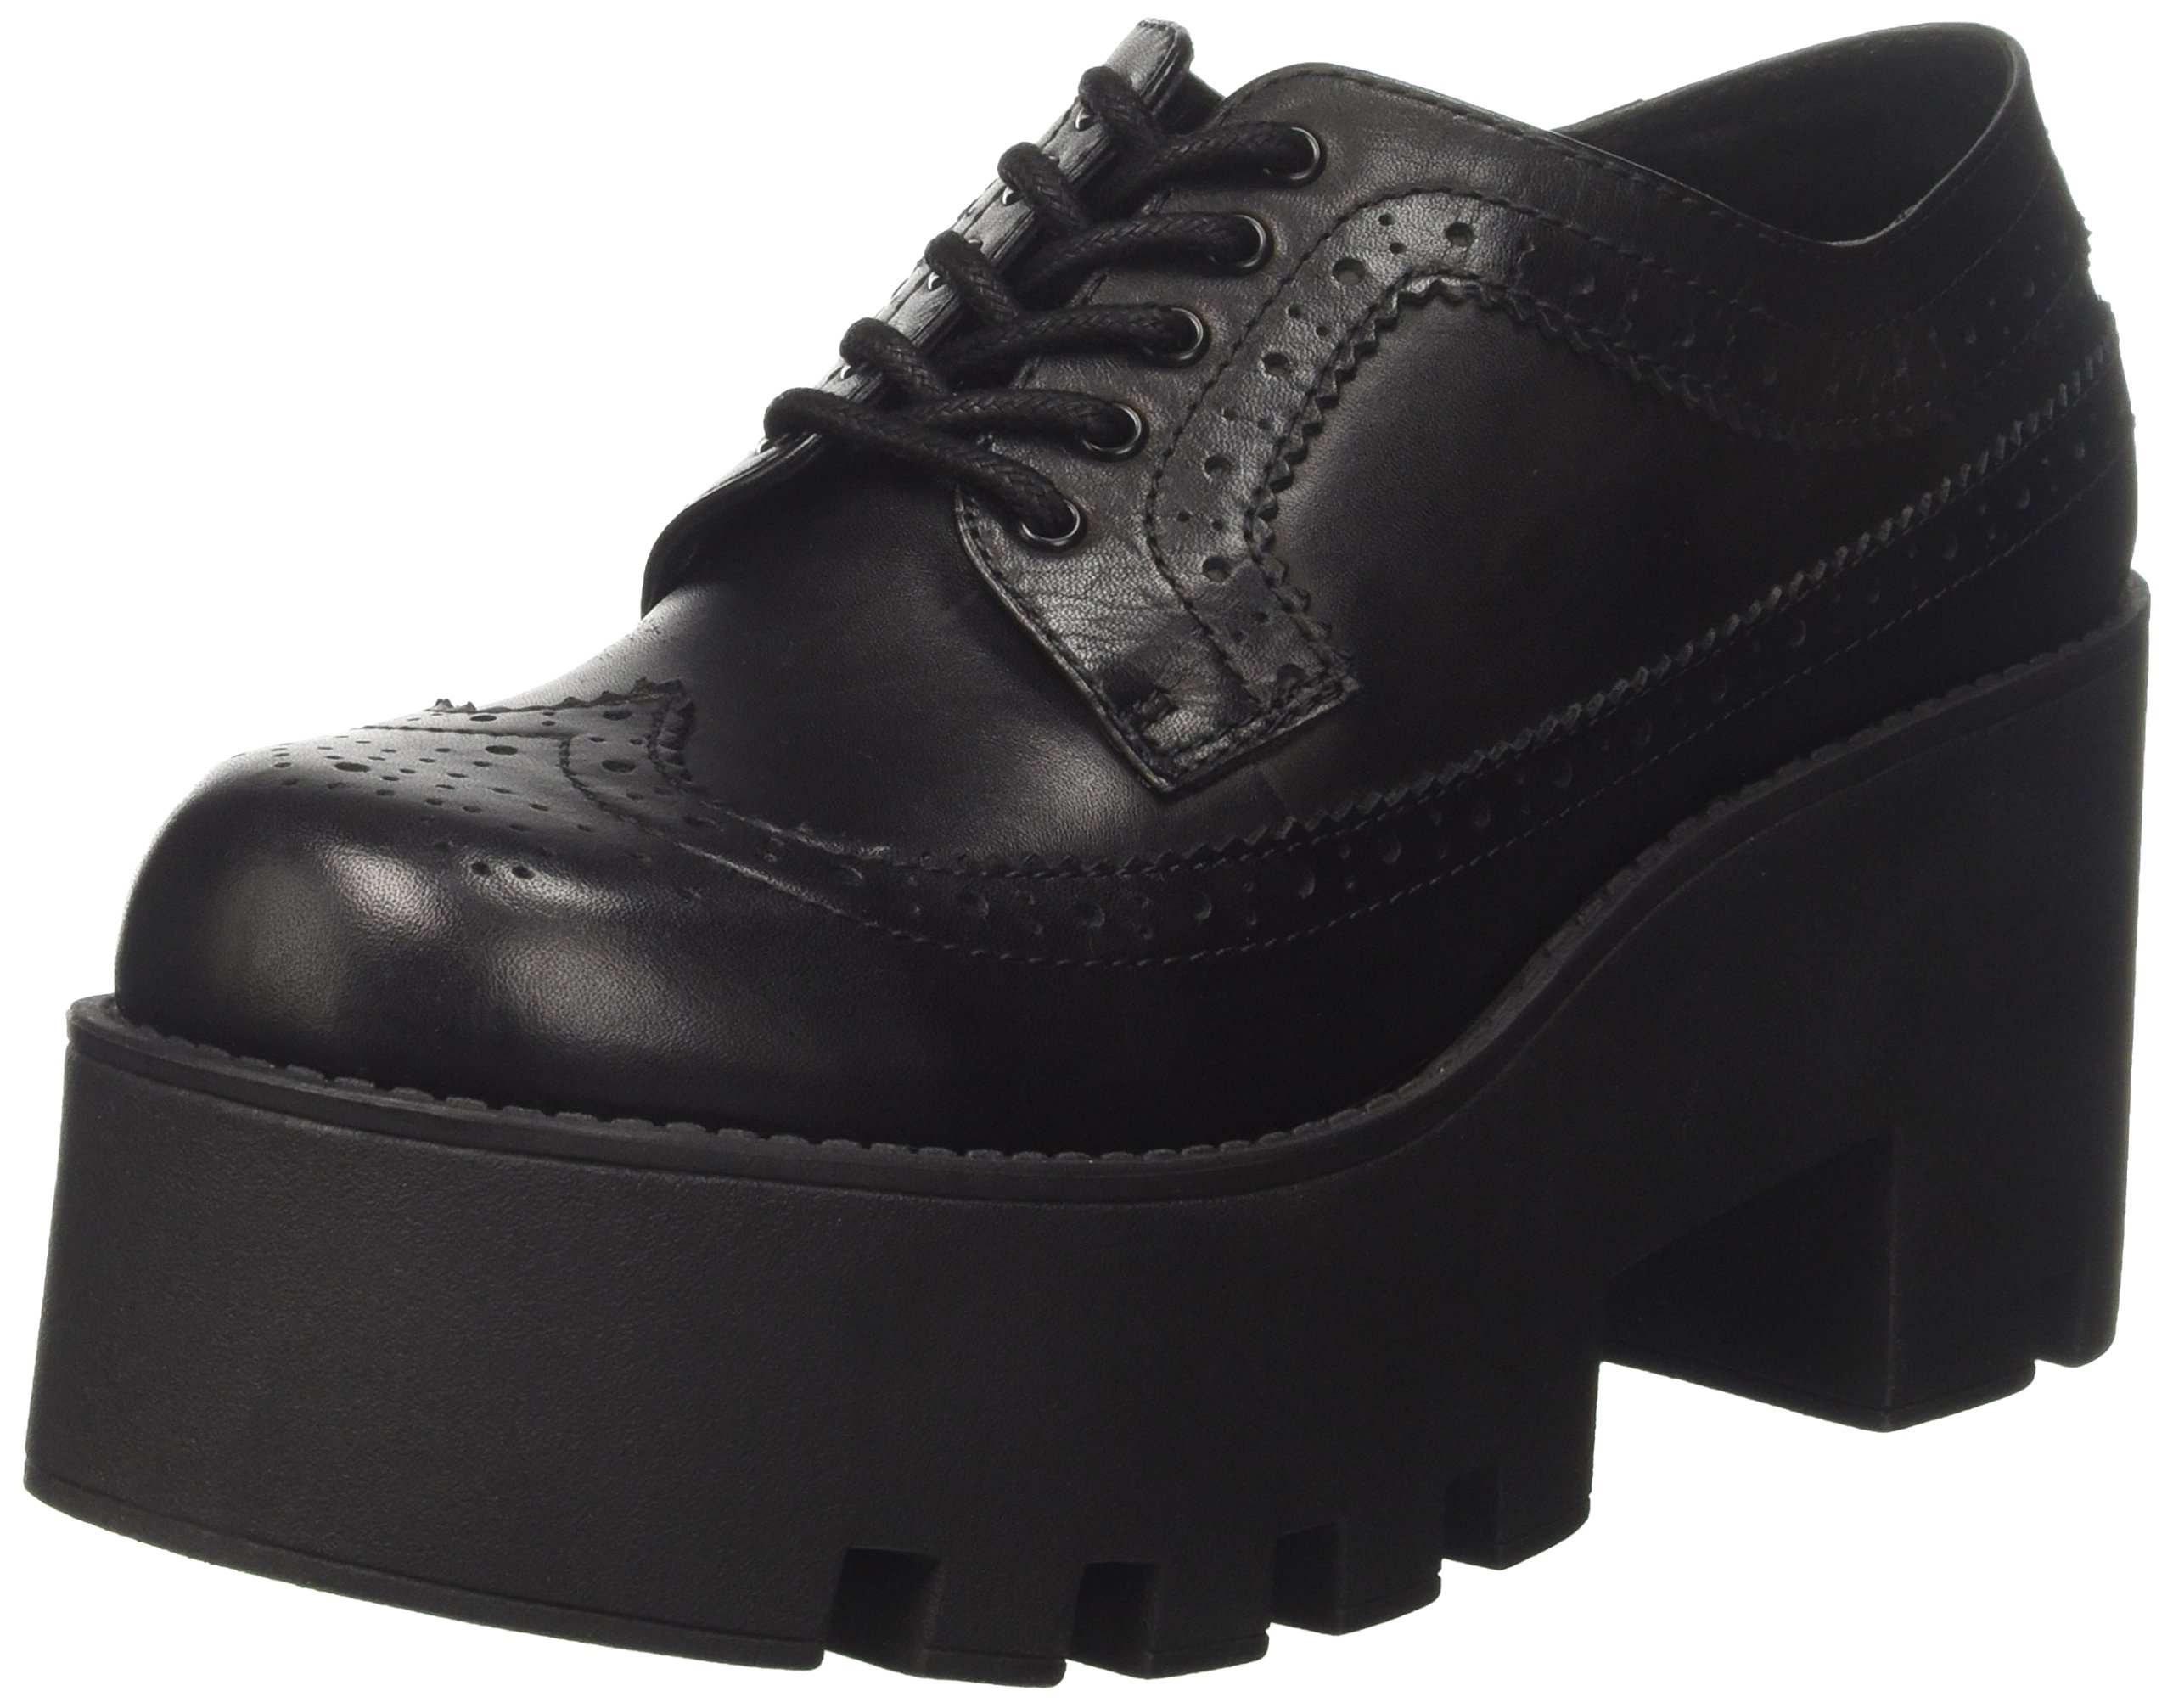 FemmeNoirblack Smith Leather40 FoxyBrogues Eu Windsor 1KFTJlc